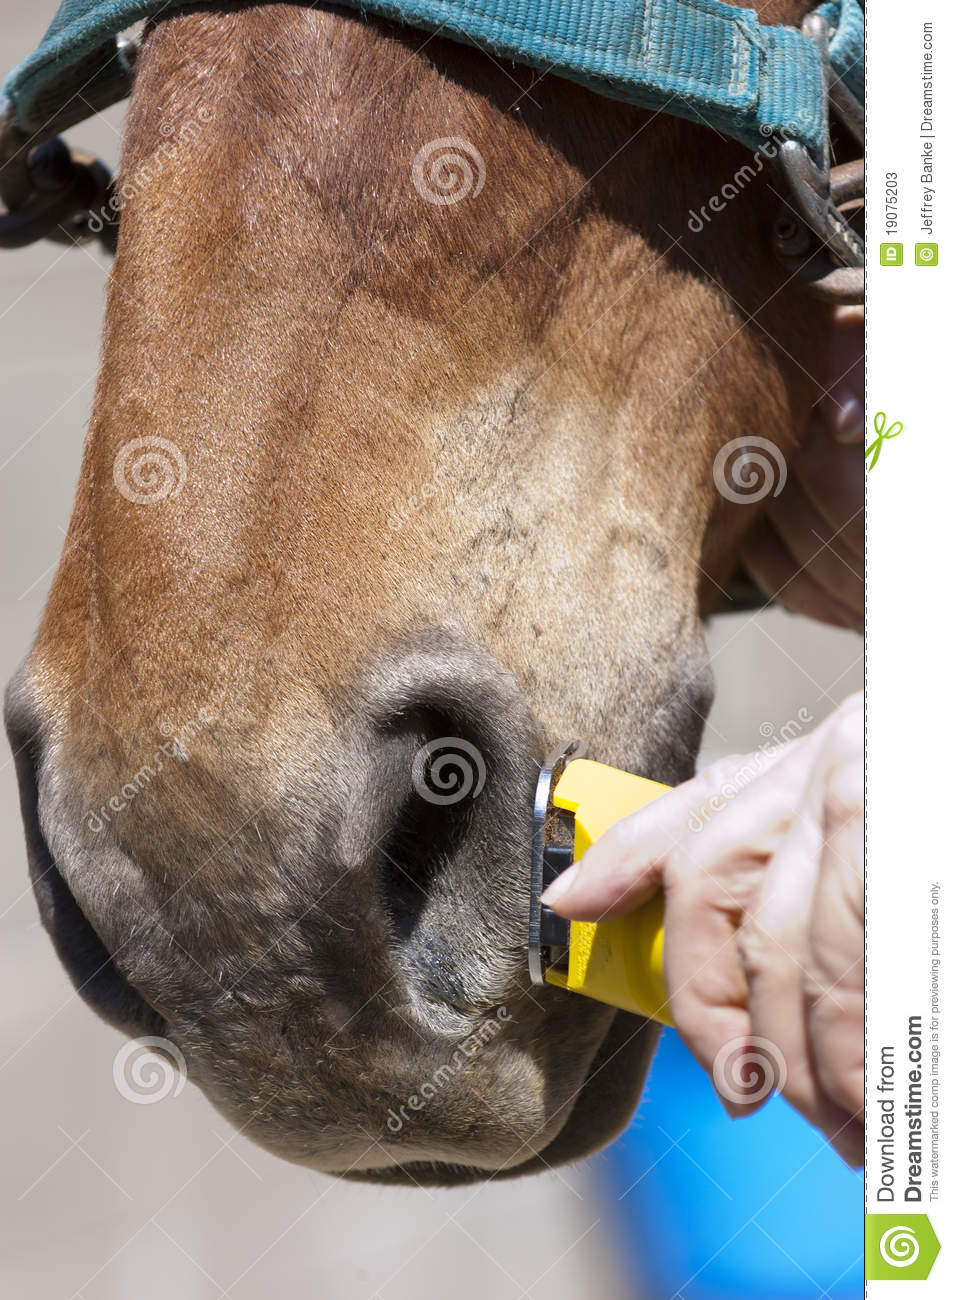 how to trim a horse for a show